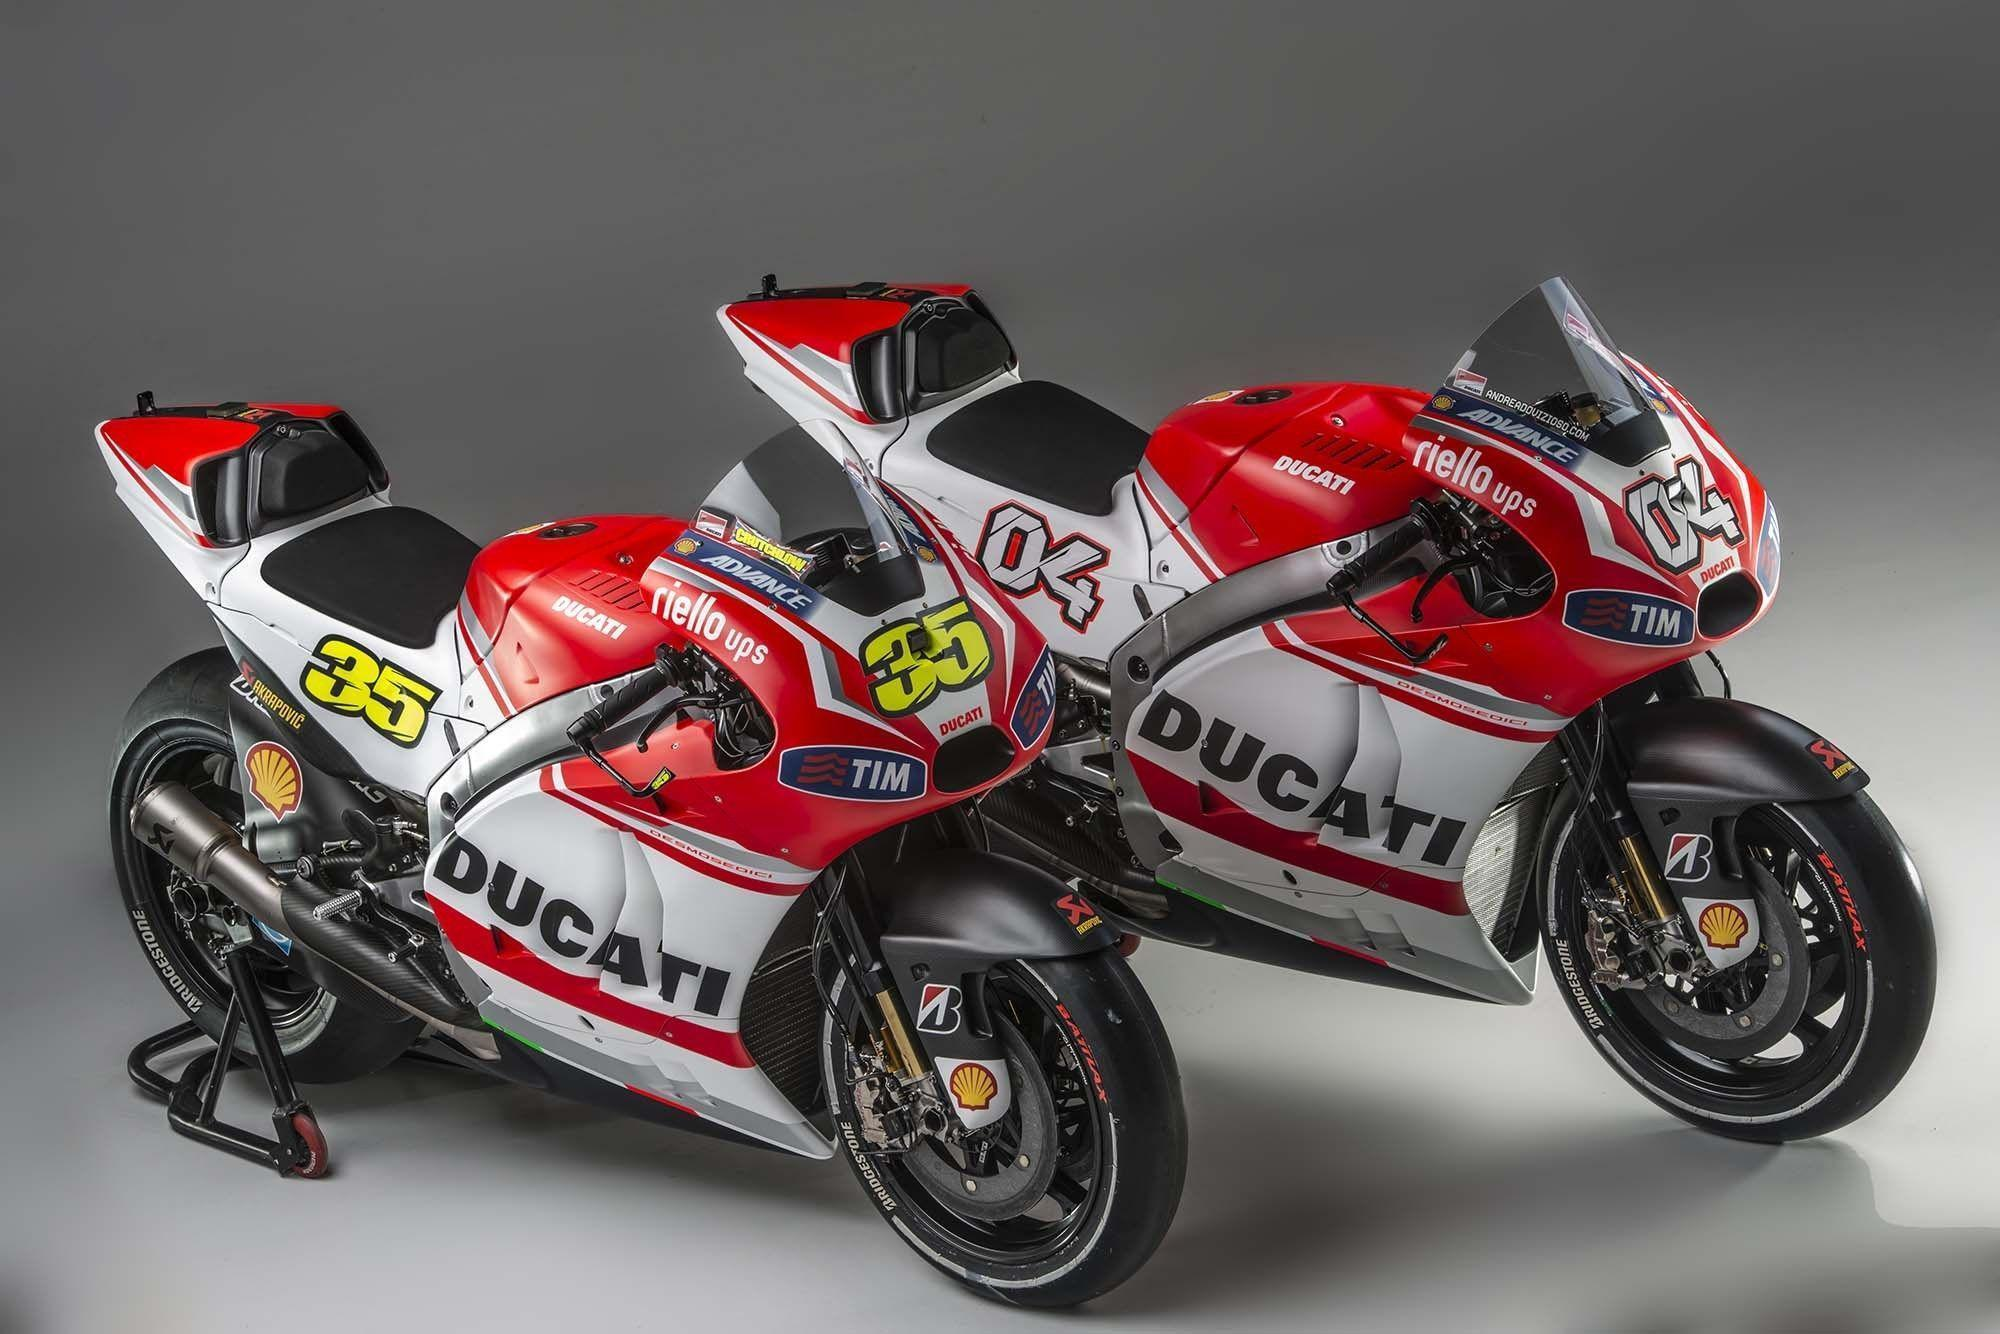 MotoGP: Ducati's 2015 MotoGP Bike Wont Be Ready In Time For The